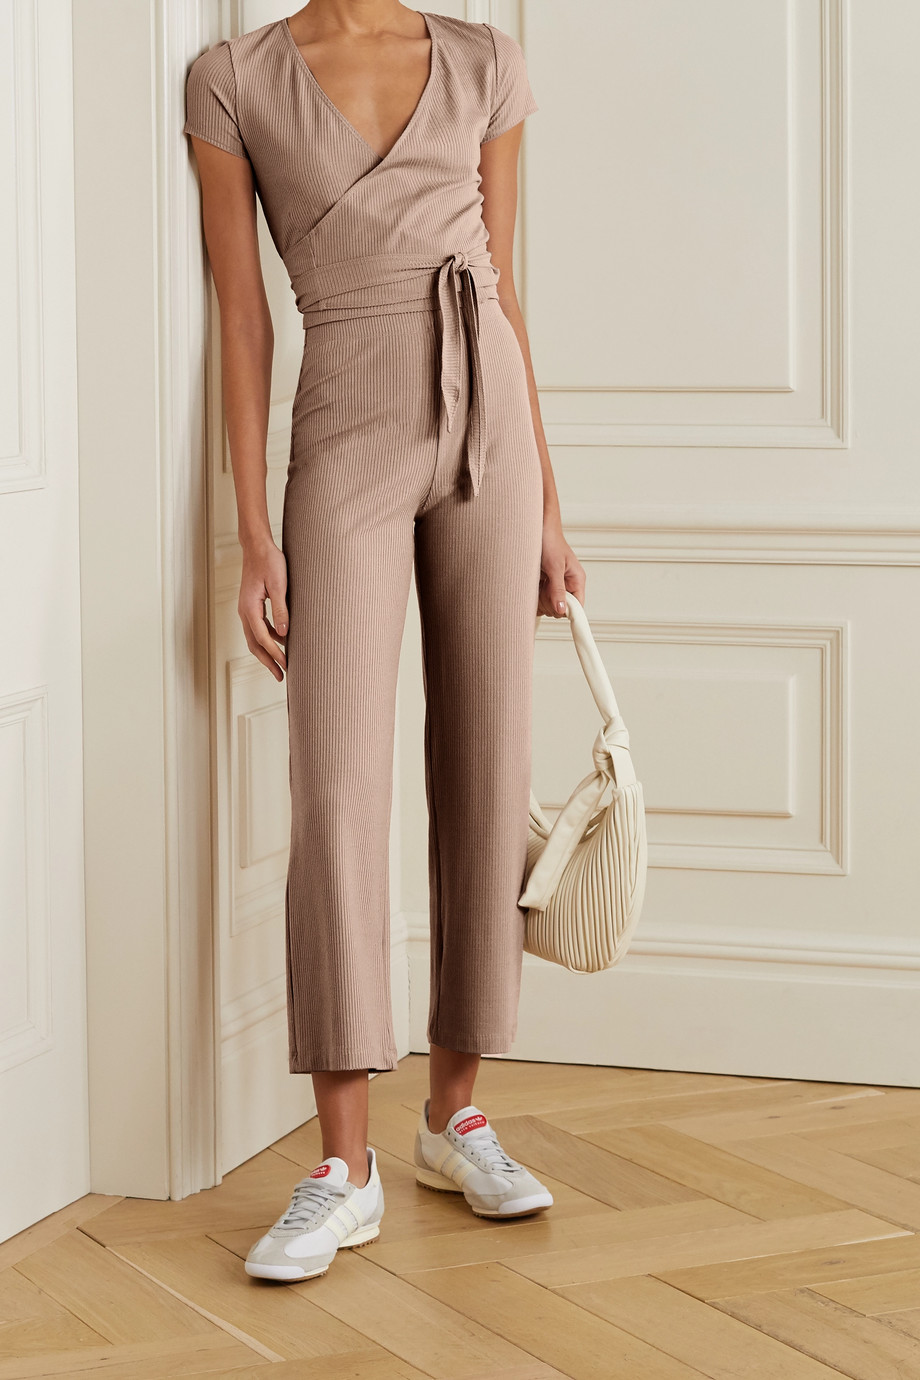 Reformation + NET SUSTAIN Flora ribbed stretch-TENCEL Lyocell top and pants set